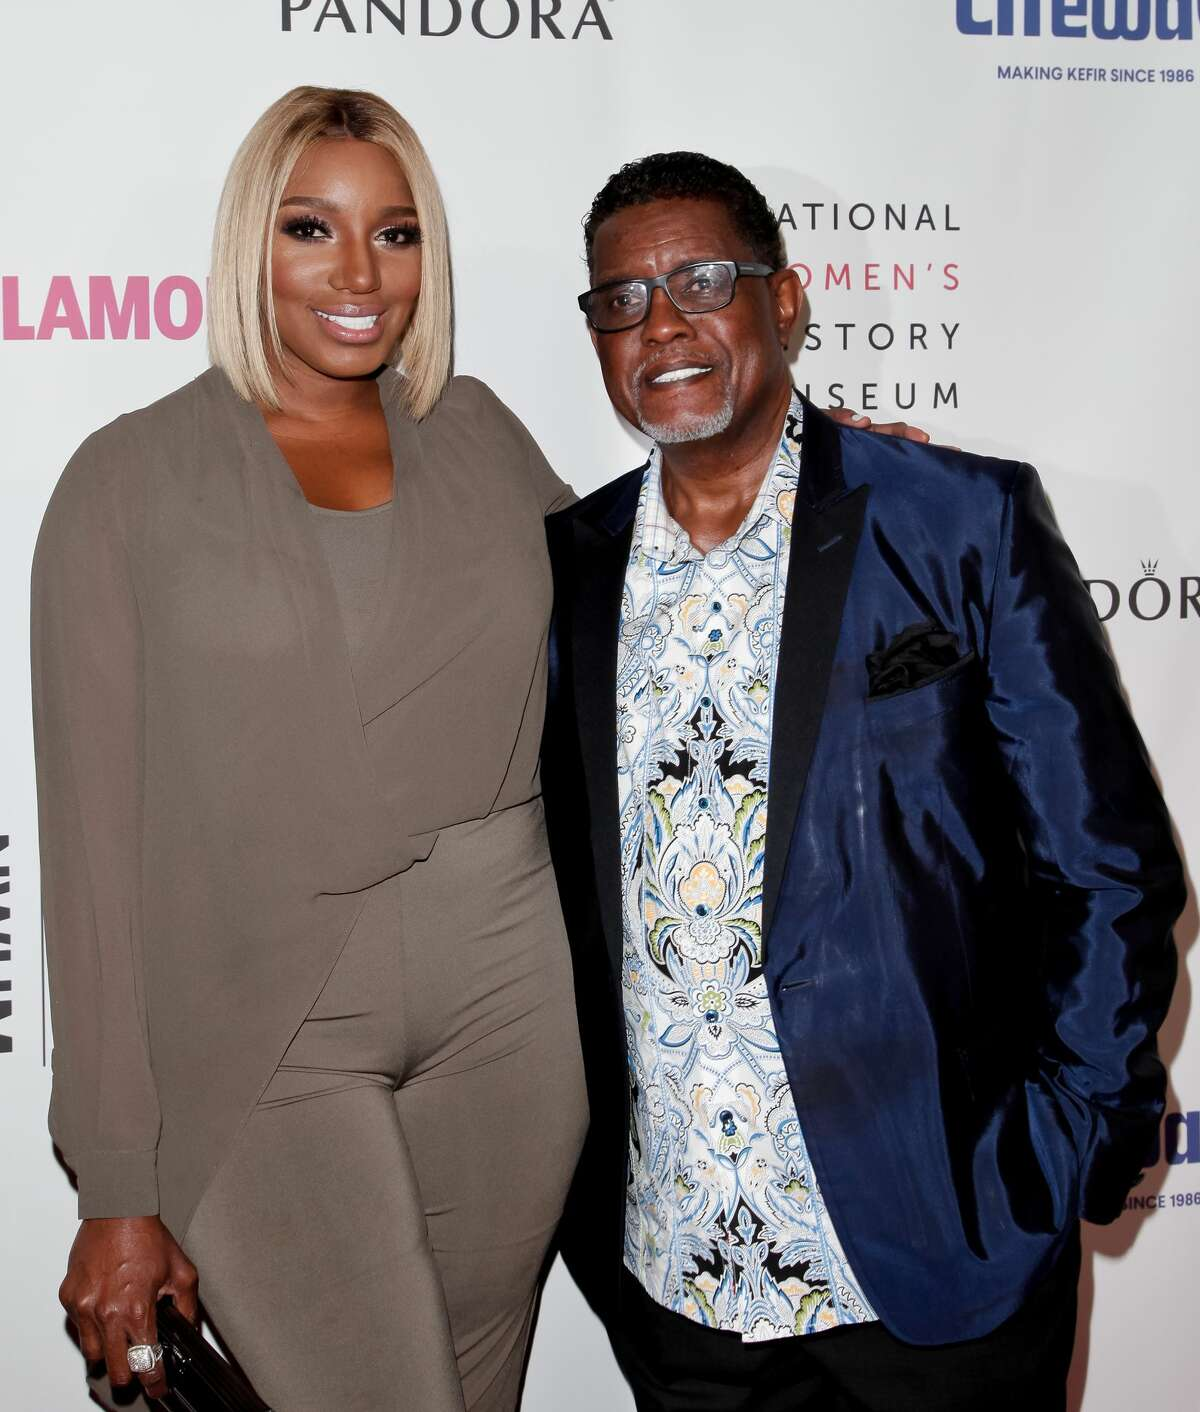 NeNe Leakes and Gregg Leakes split after thirteen years of marriage in 2011, but the reality TV couple said